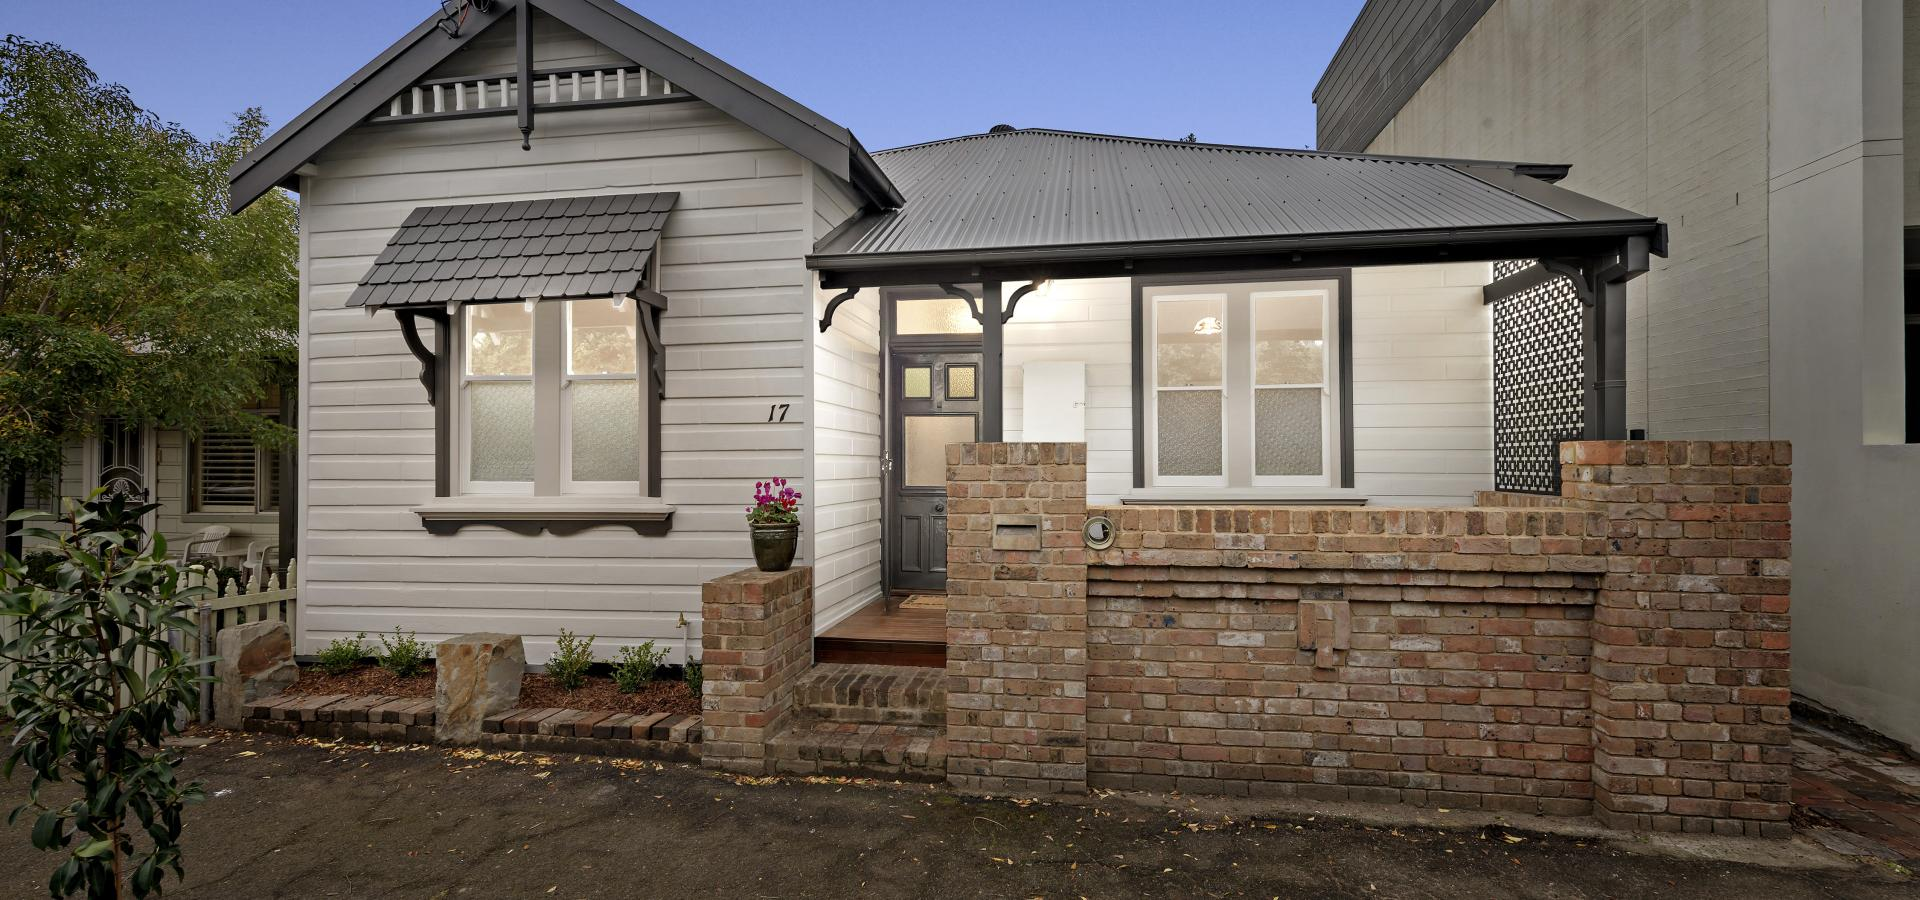 Fully renovated 3 bedroom home in a fantastic harbourside location